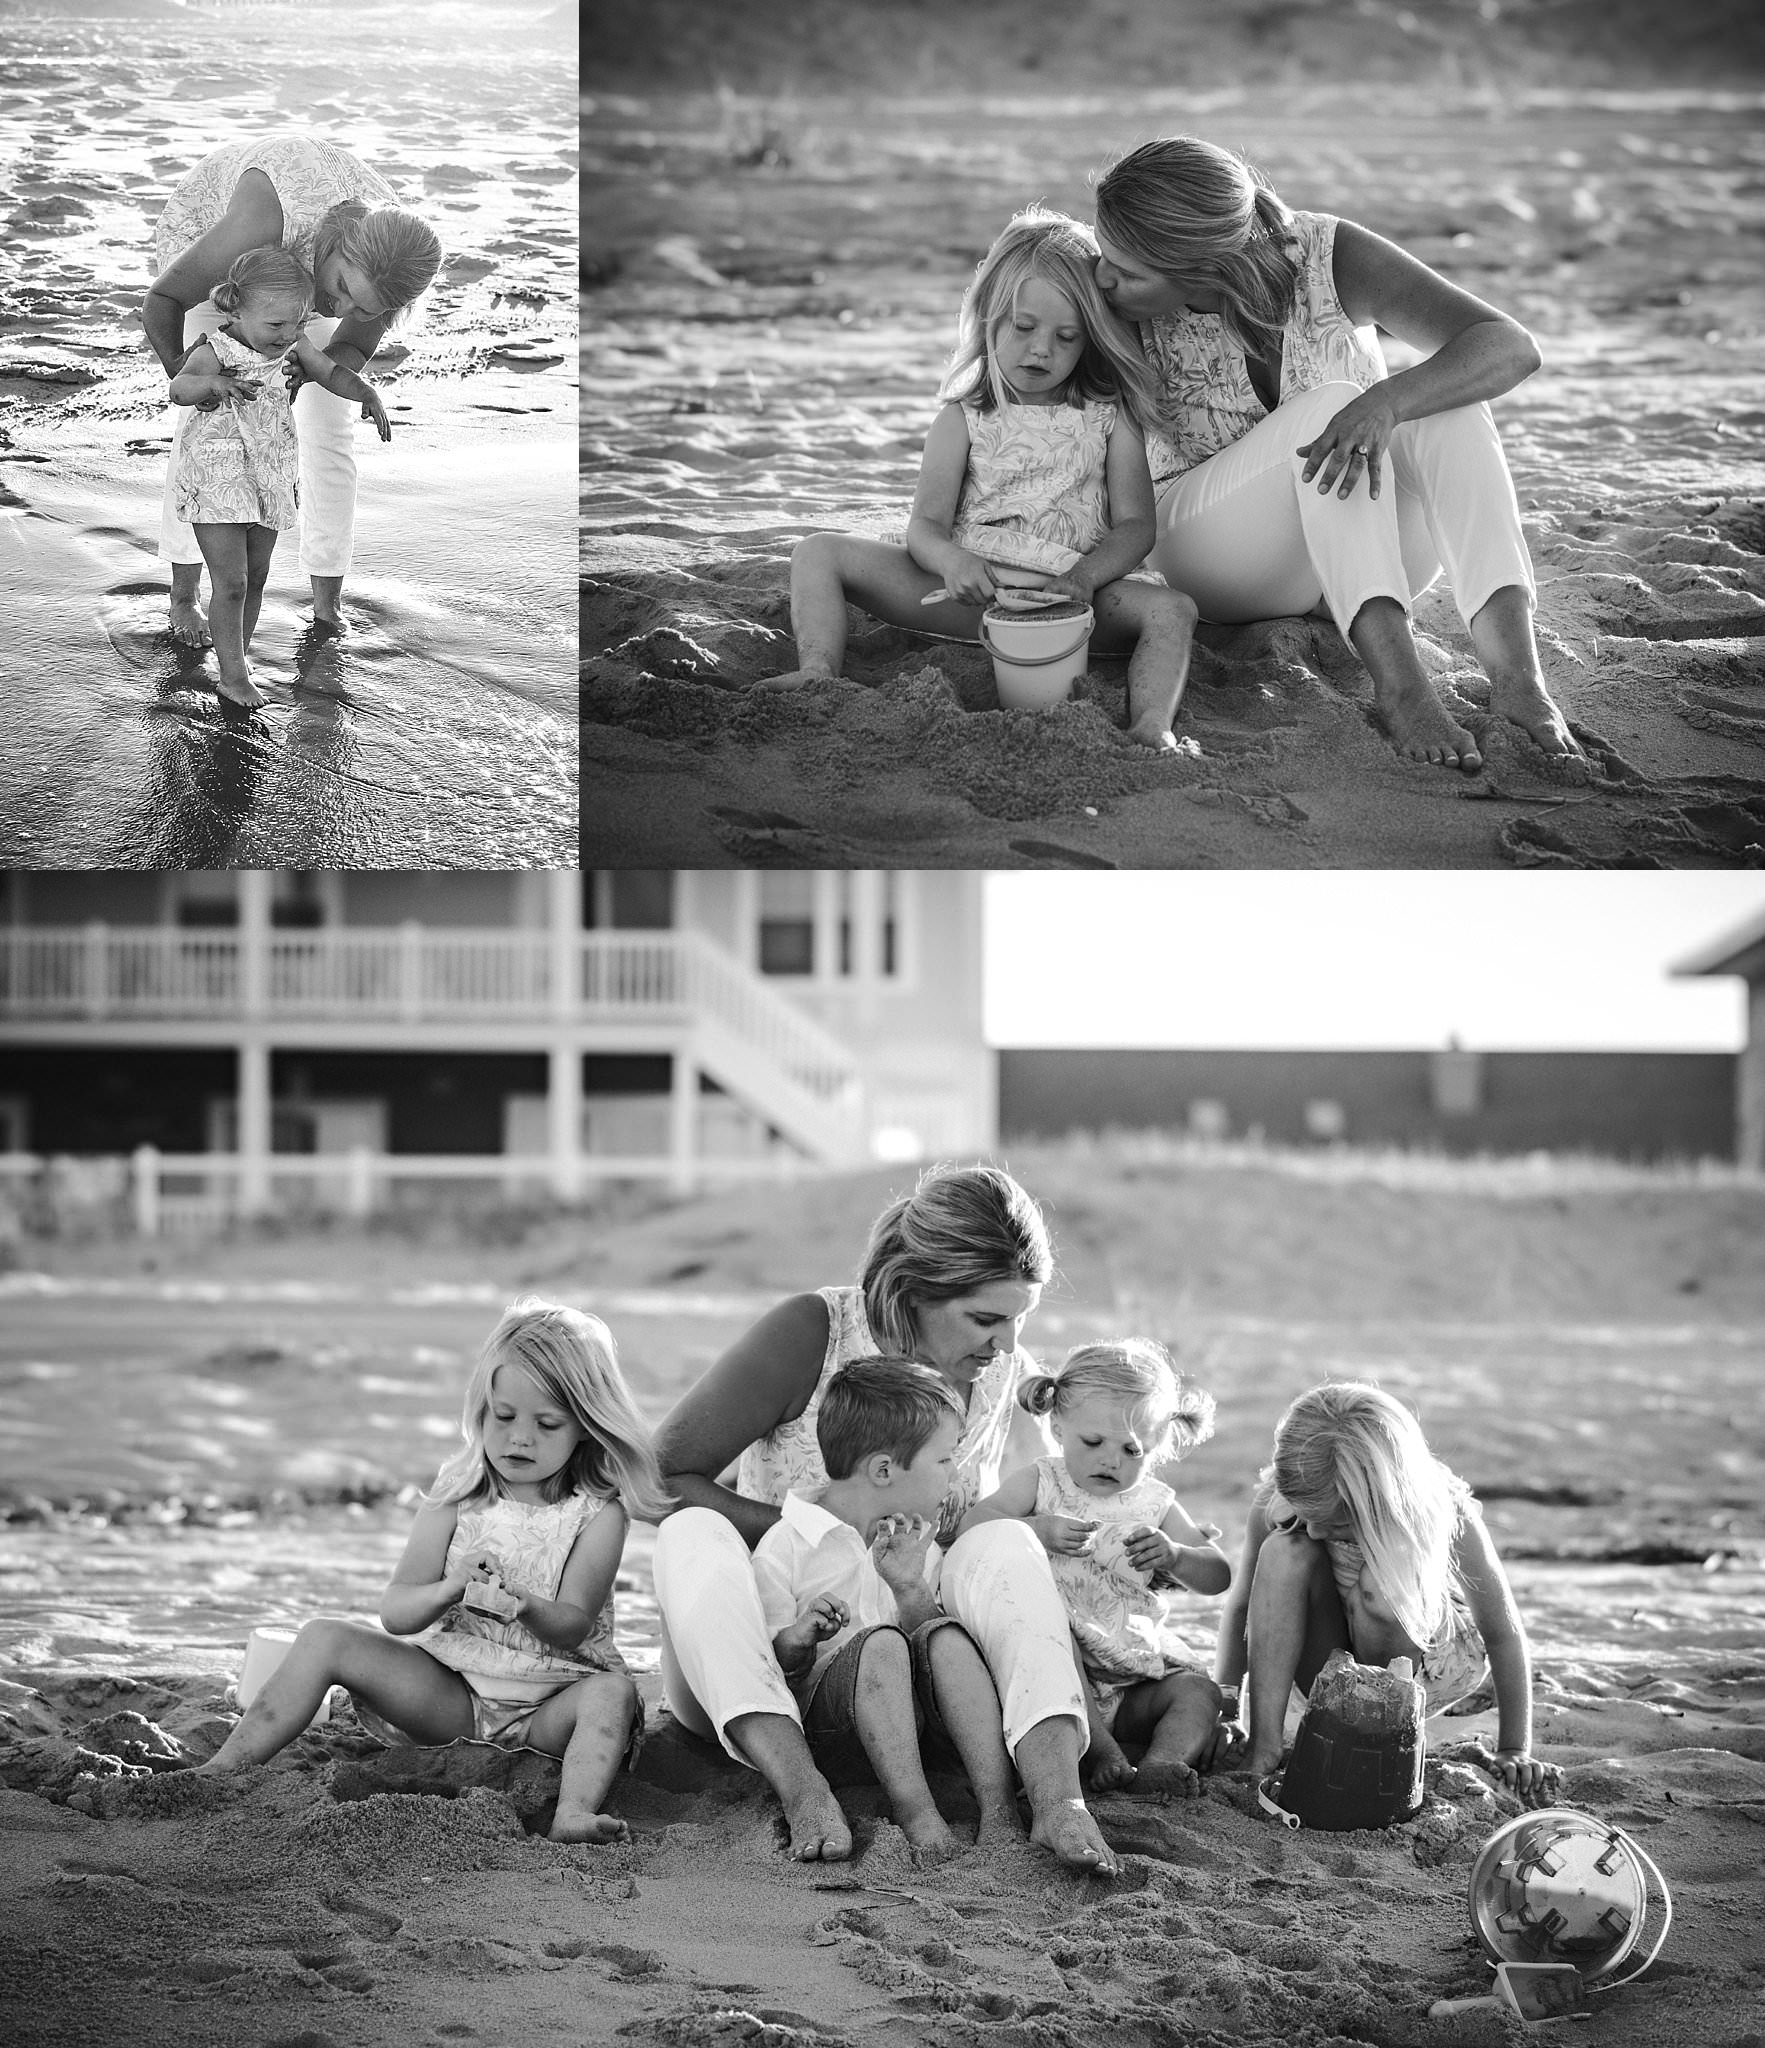 family-vacation-pictures-at-sandbridge-beach-va-photographer-melissa-bliss-photography.jpg